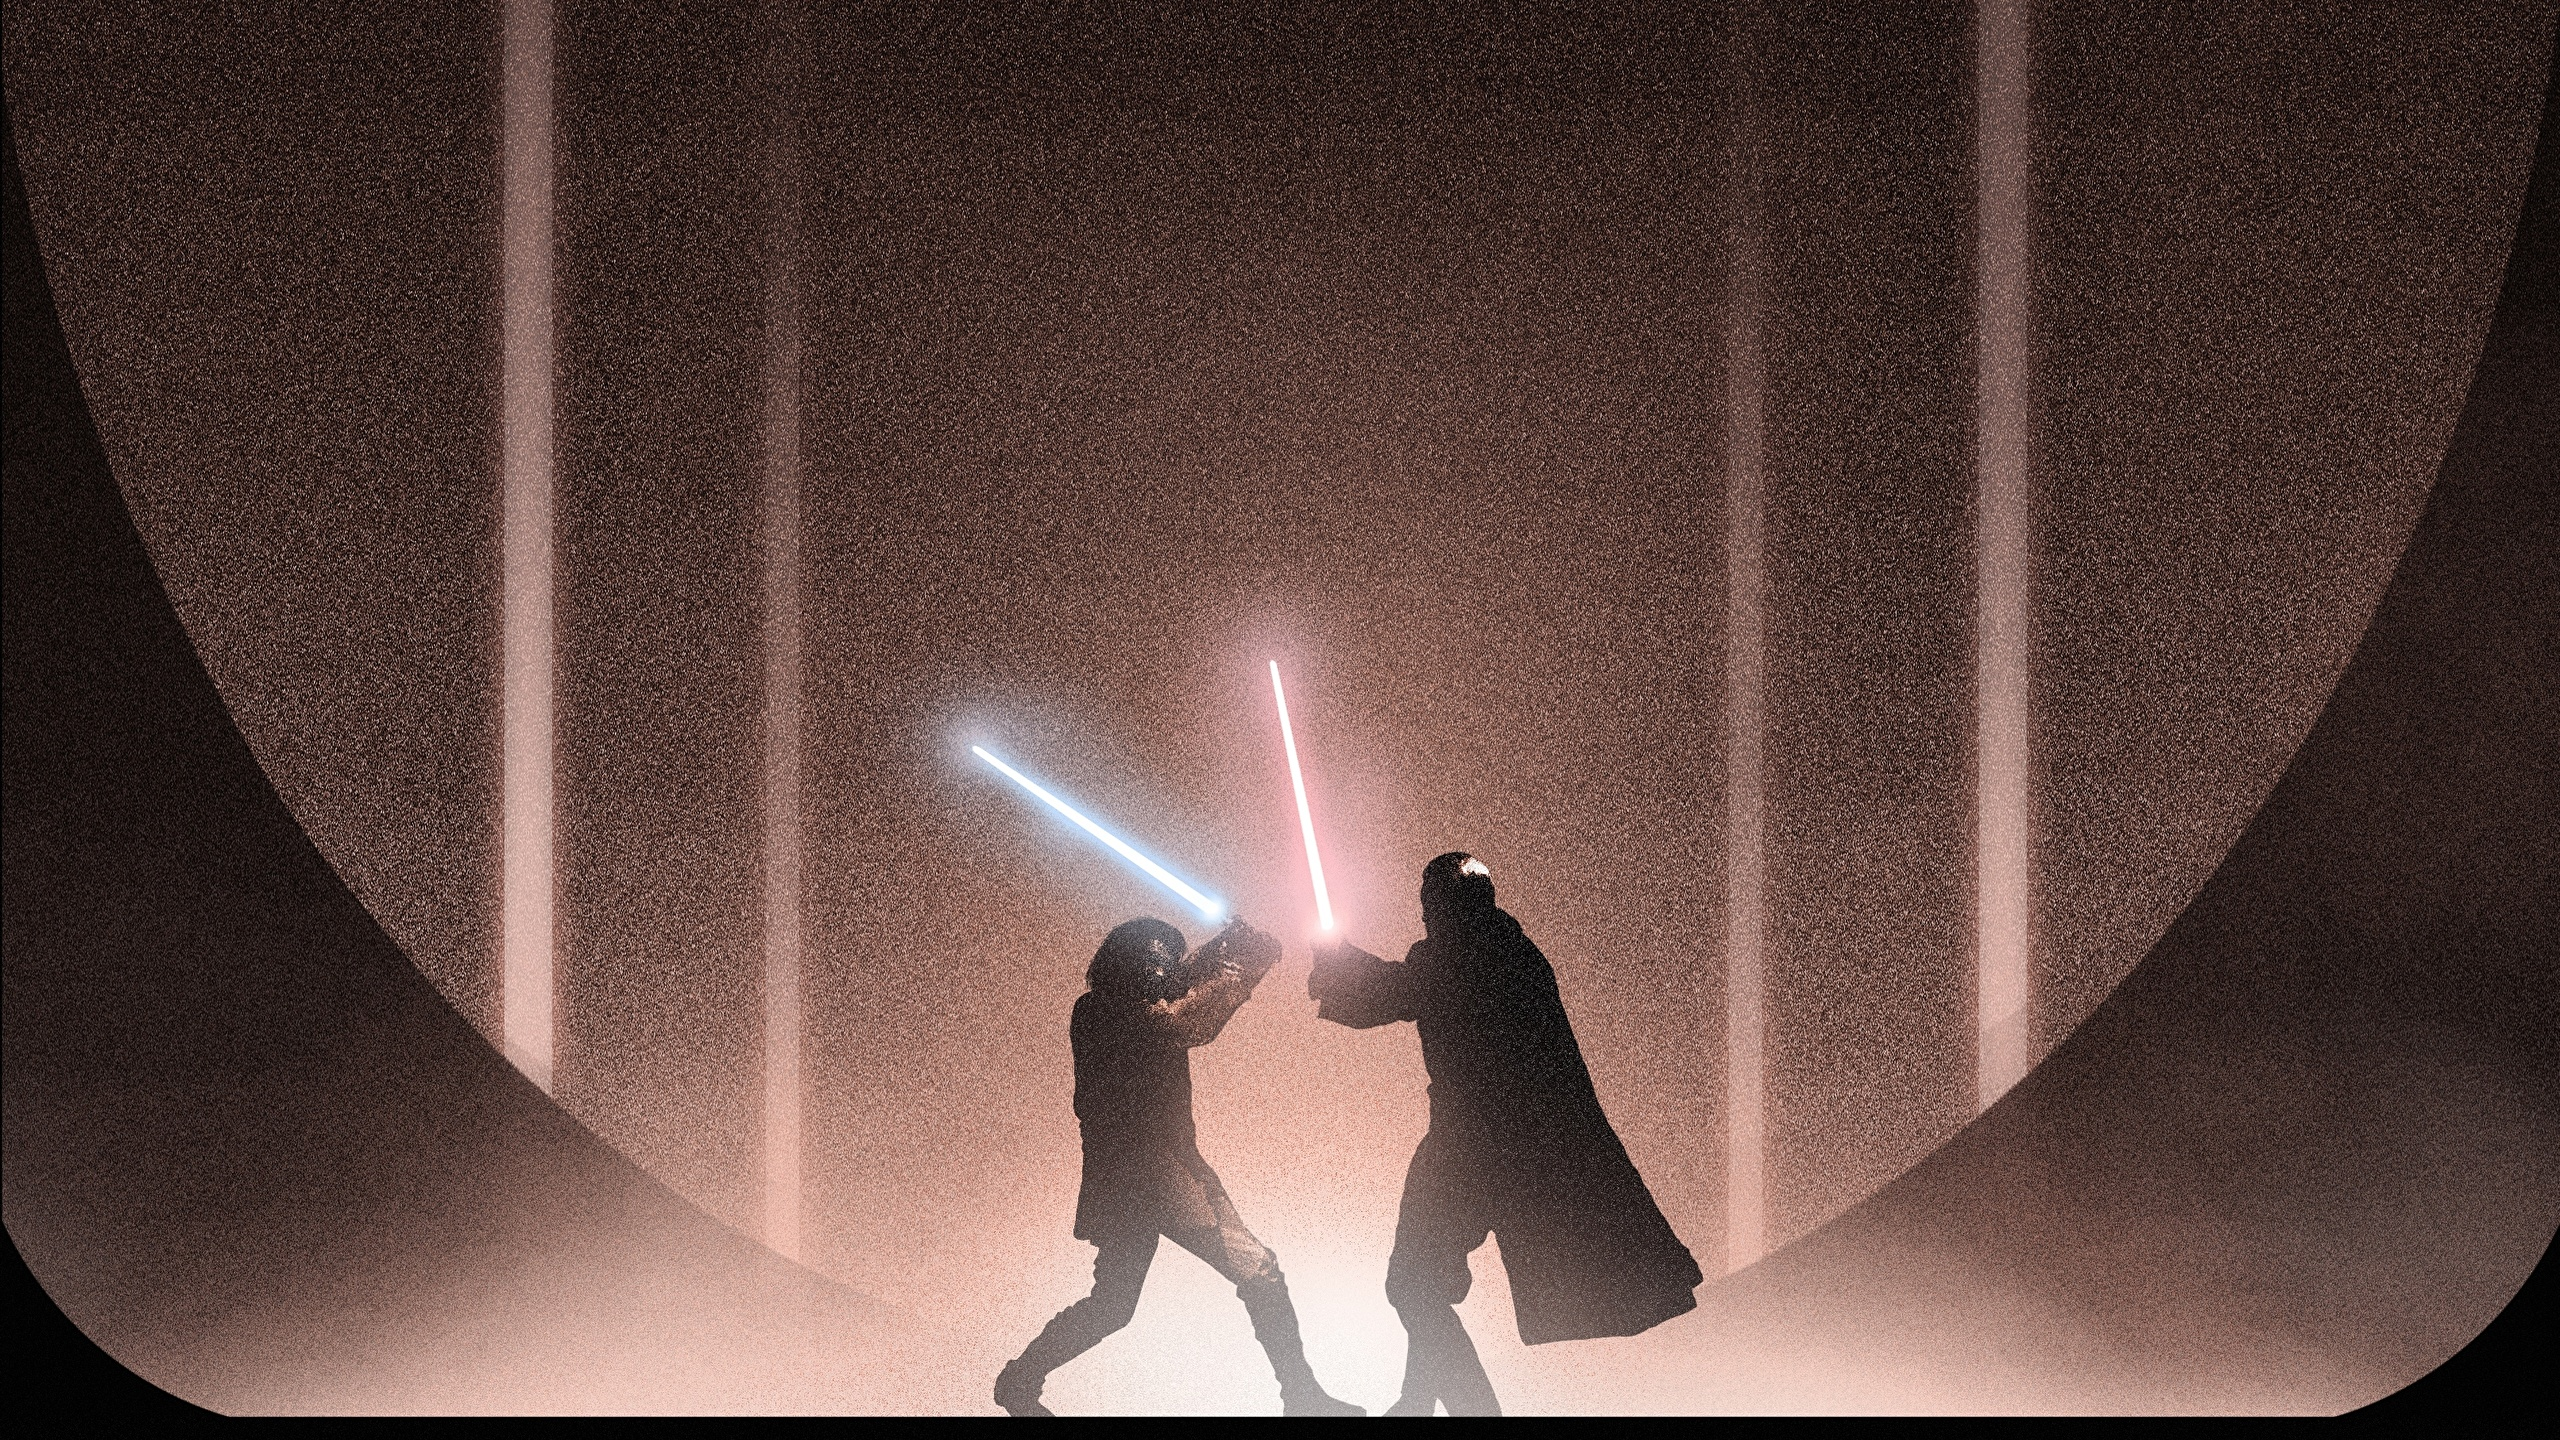 Star Wars Lightsaber Duels Episodes 2560x1440 Wallpaper Teahub Io